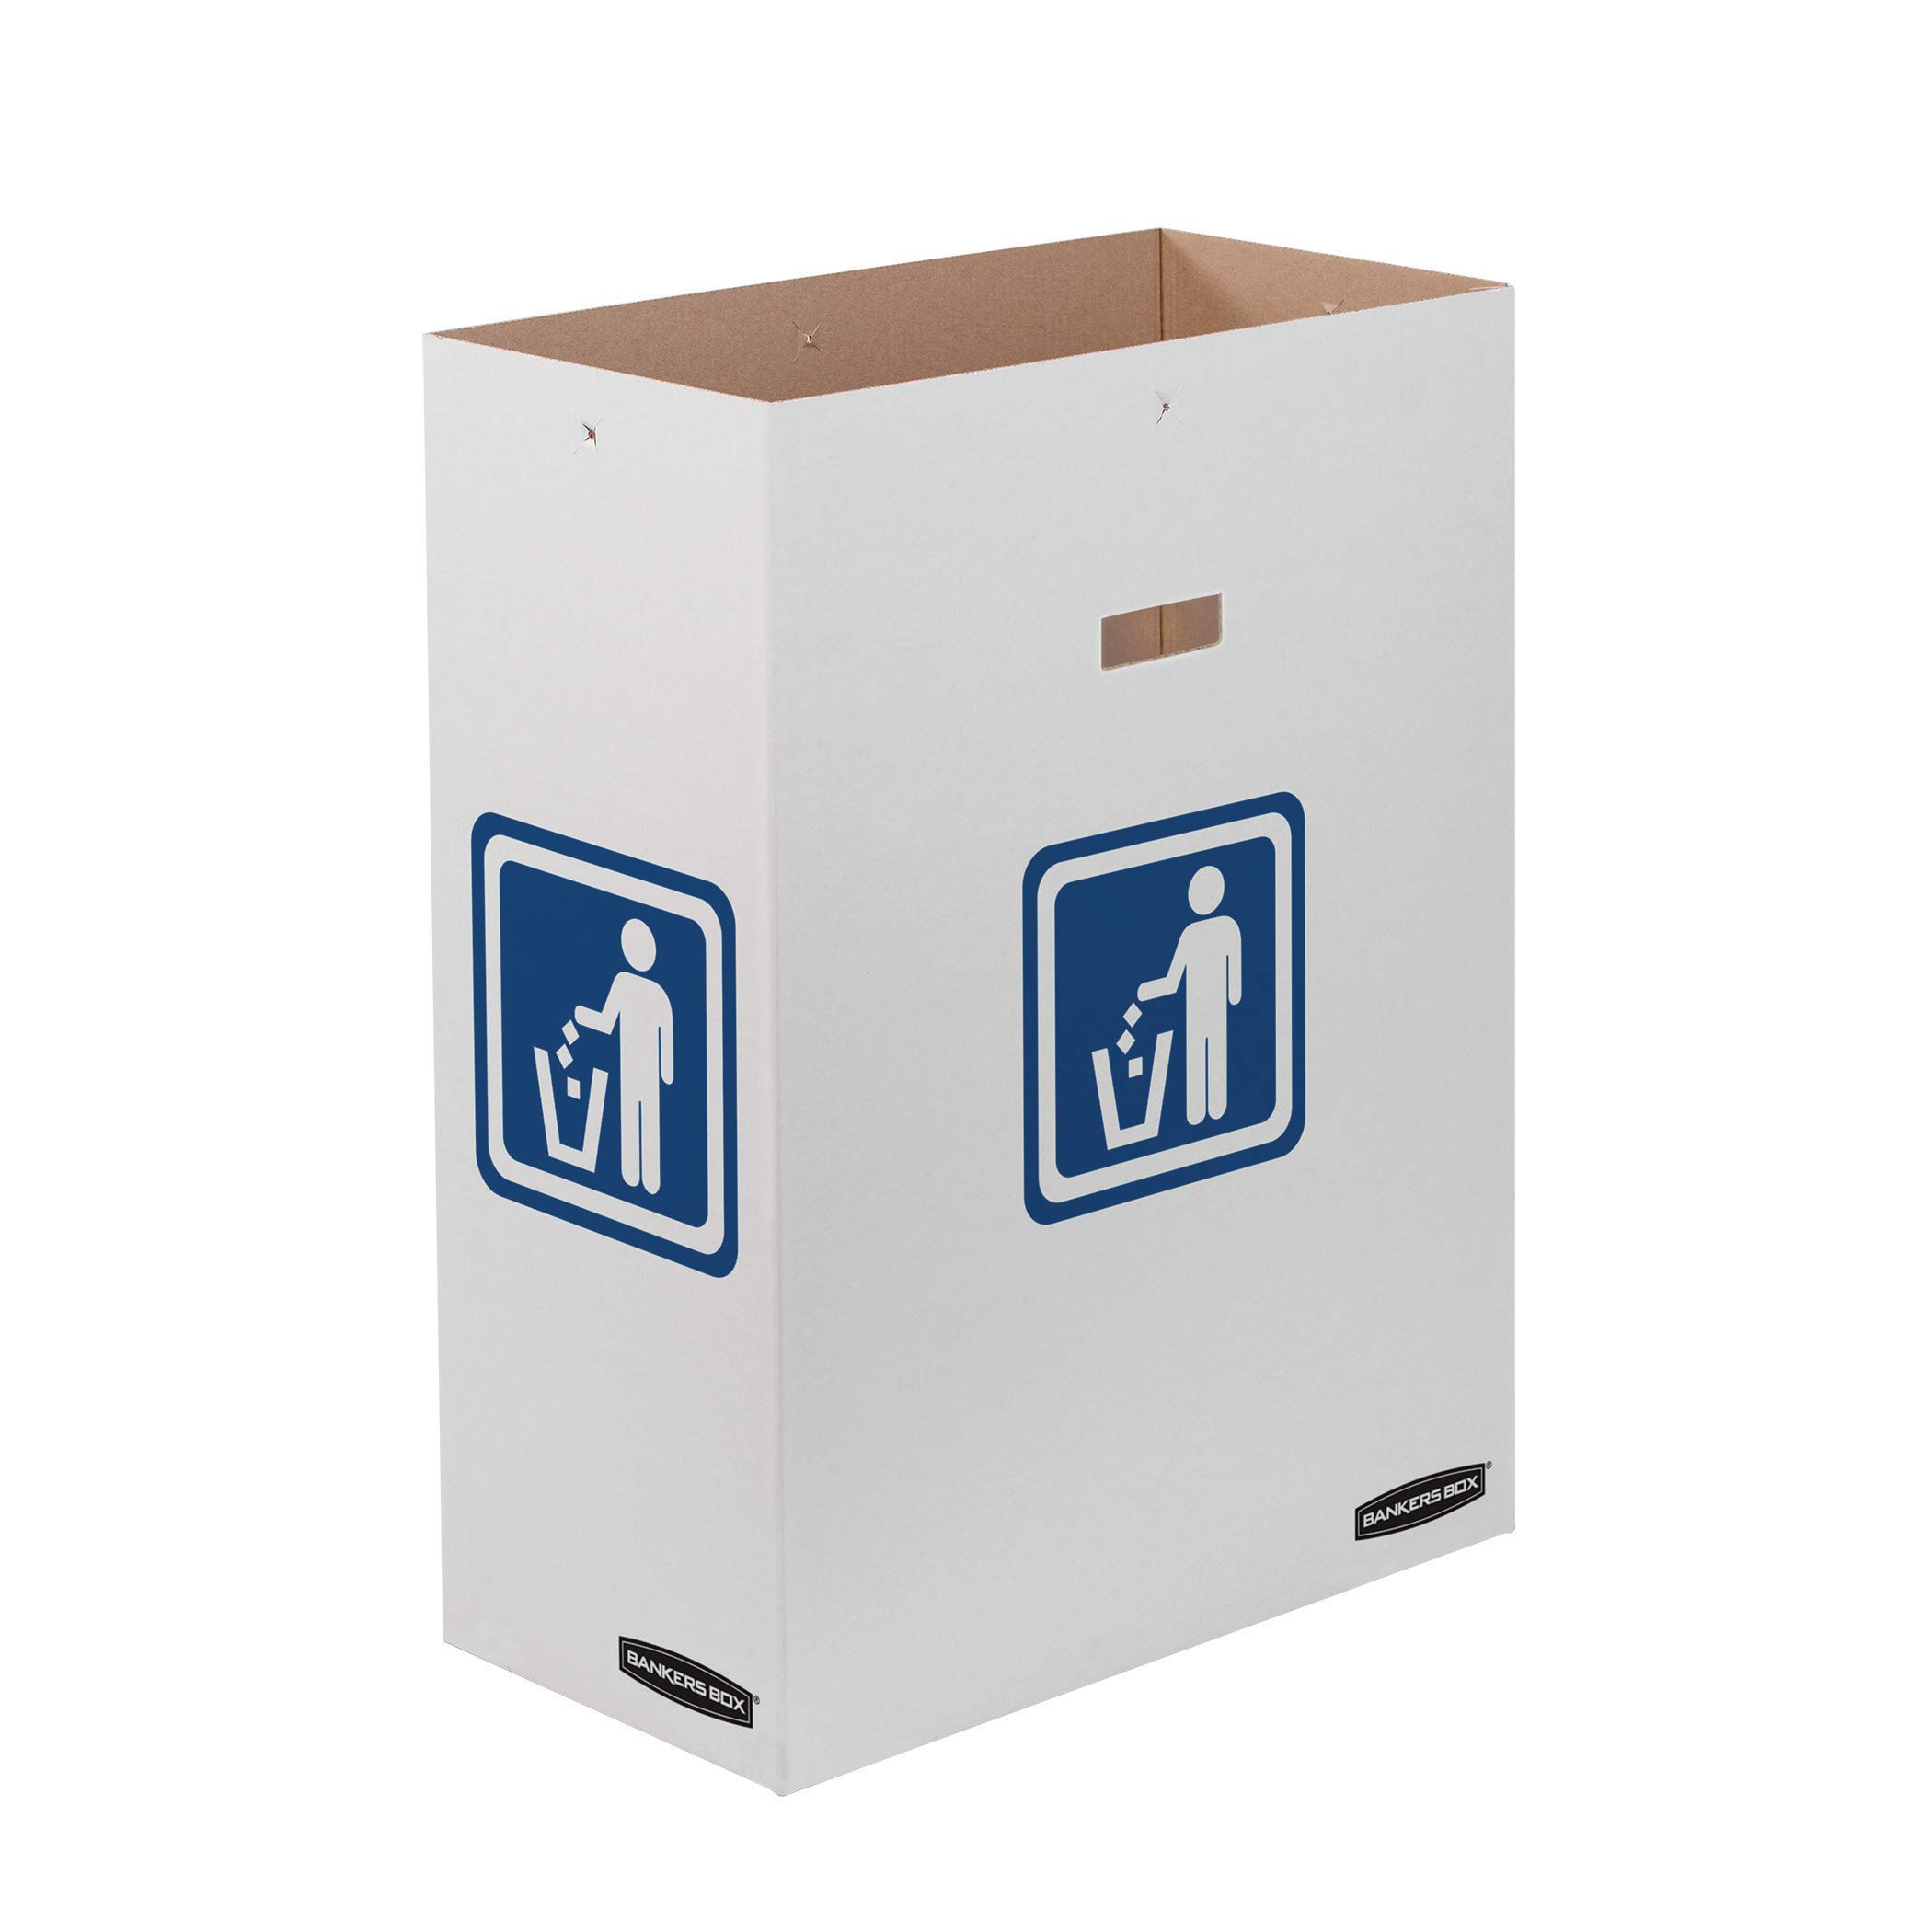 Bankers Box Slim Waste and Recycling Can, 23 Gallon, 10 Pack (7320601)